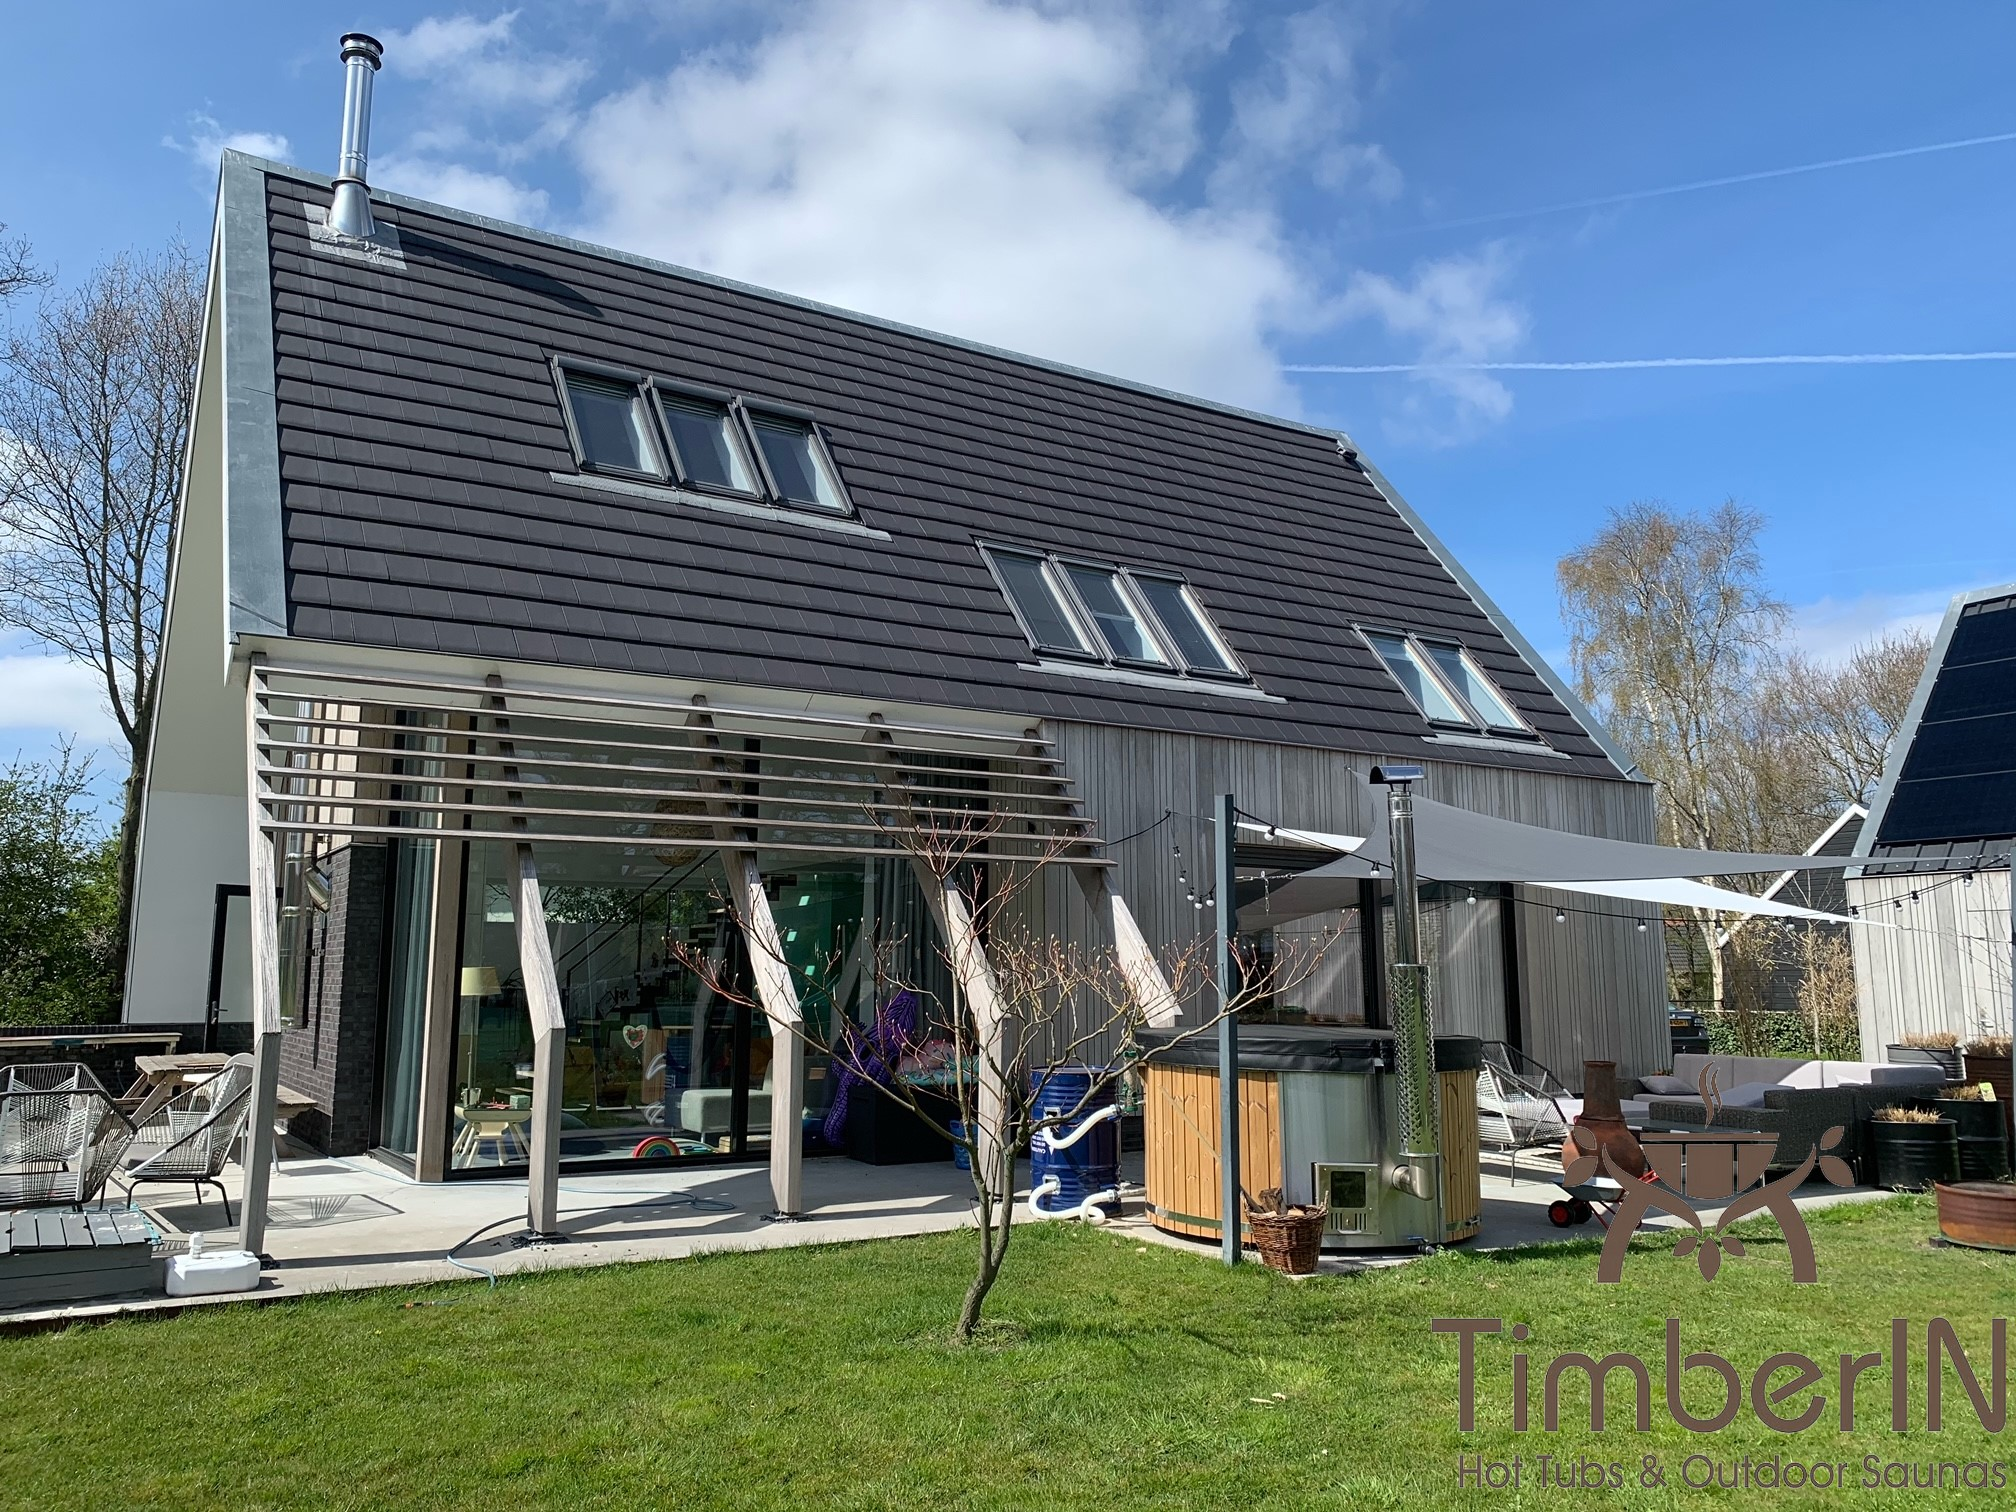 Wood burning heated hot tubs with jets – TimberIN Rojal Erik Hierden Netherlands 3